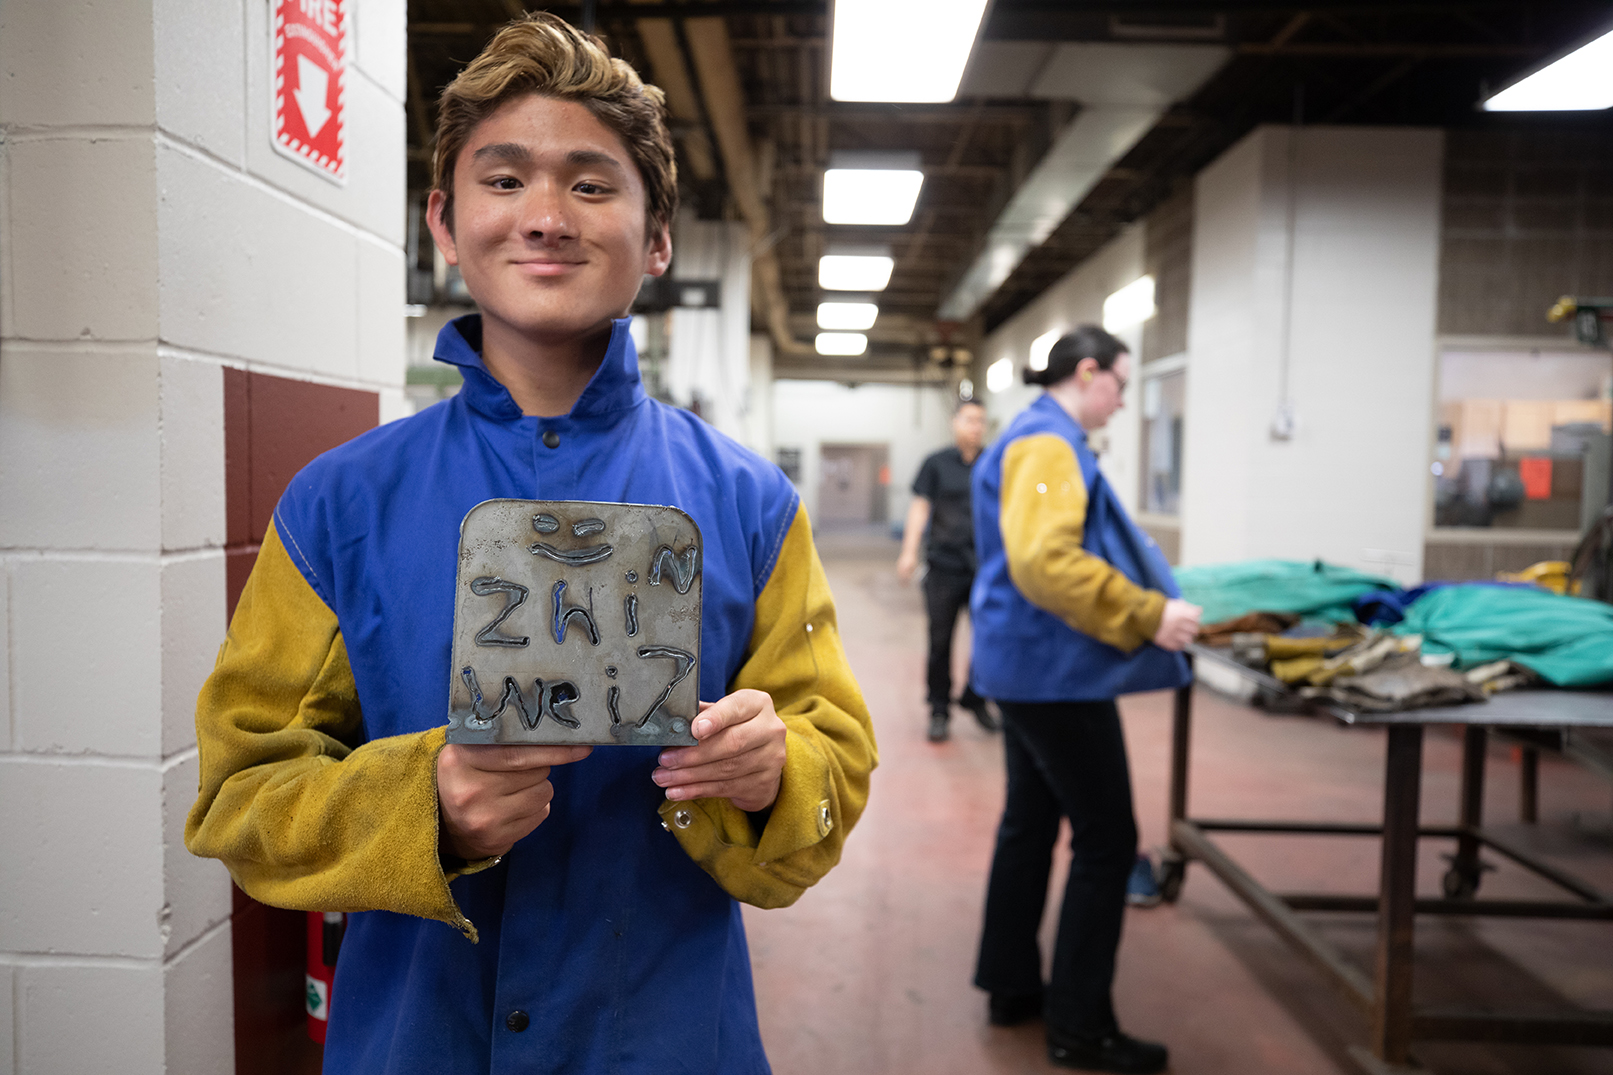 Zhiwei Blaubach shows off his welding creation that he made during a YCAP session.